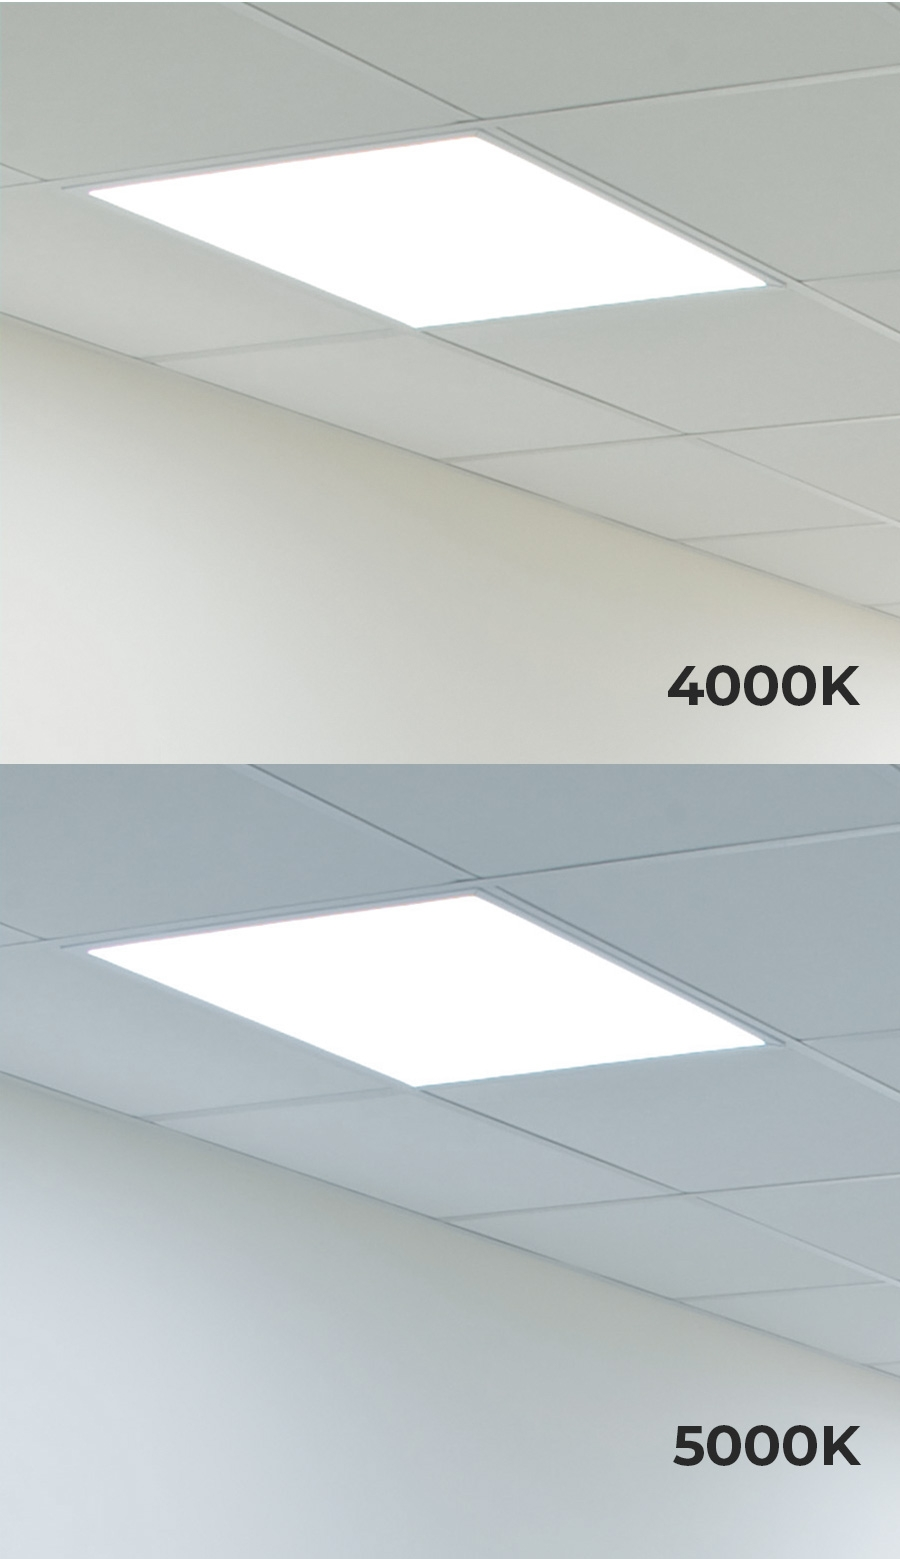 2 X2 Led Panel Light 40w Even Glow Led Panel Light Fixture Dimmable Drop Ceiling 4000 Lumens Super Bright Leds